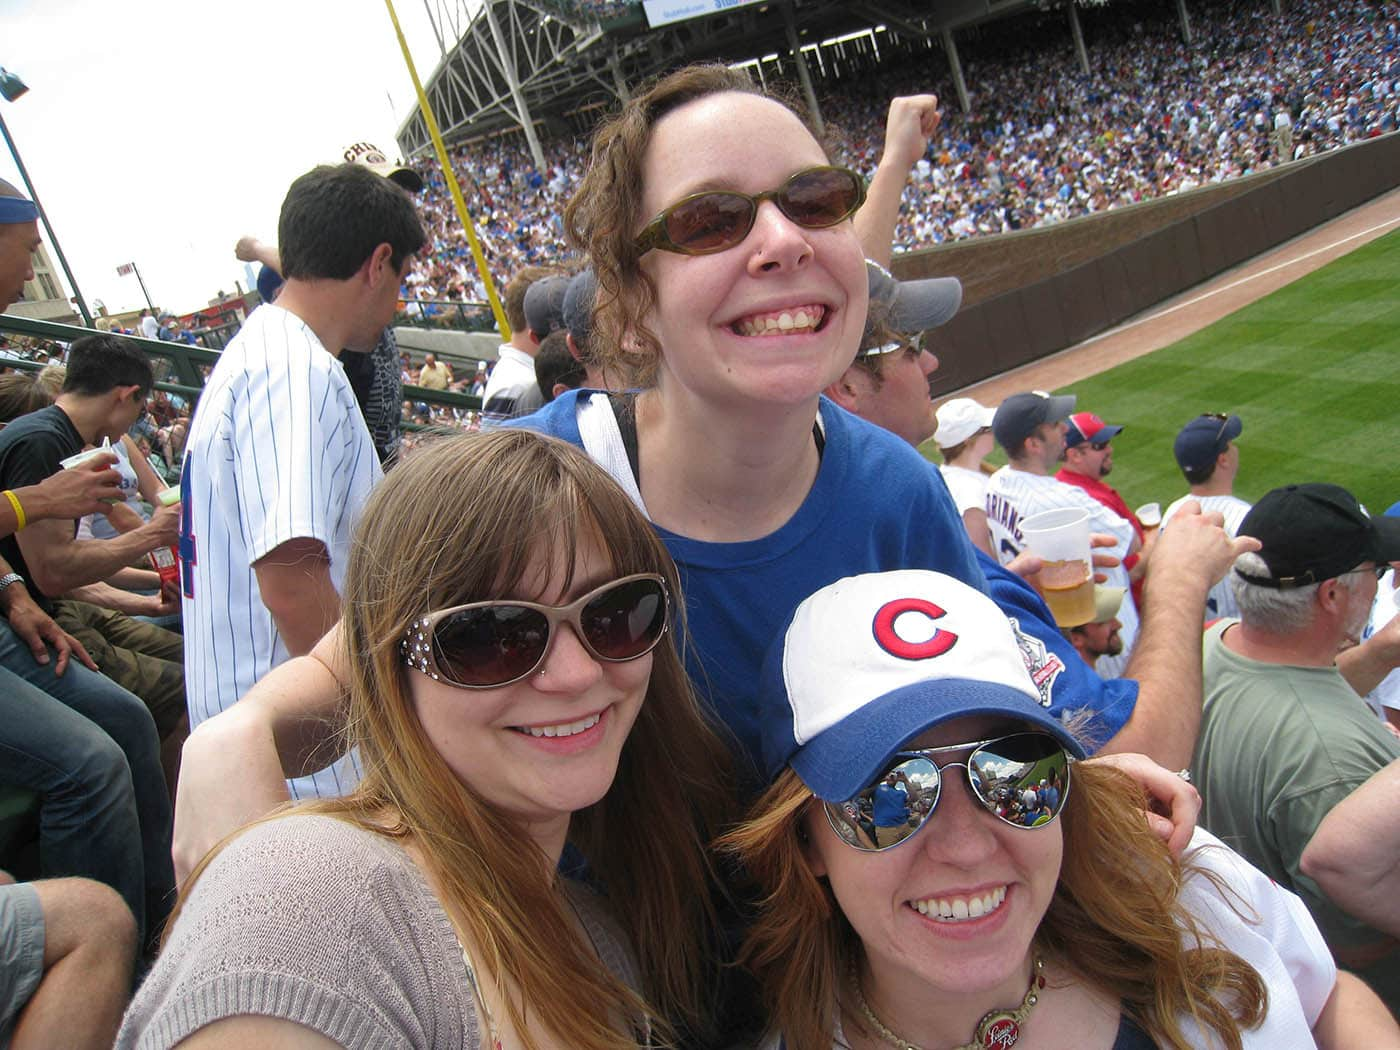 In the bleachers for Emily's birthday party at a Cubs game.